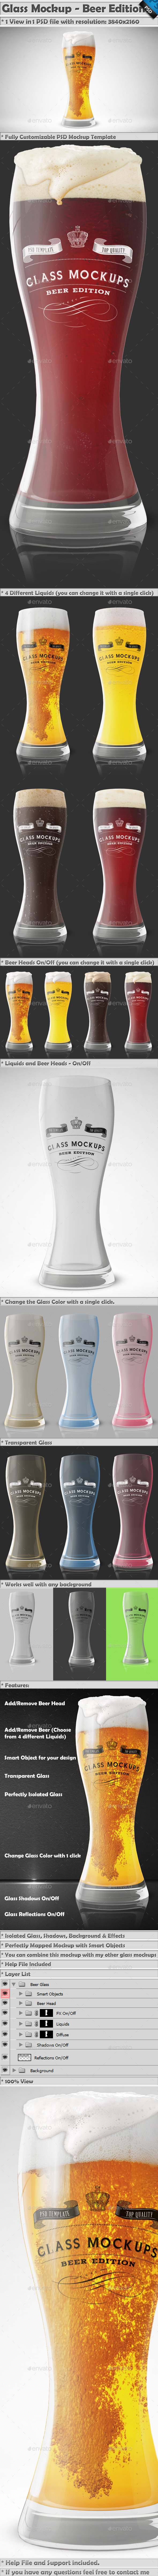 Glass Mockup - Beer Glass Mockup Edition Vol 1 - Food and Drink Packaging